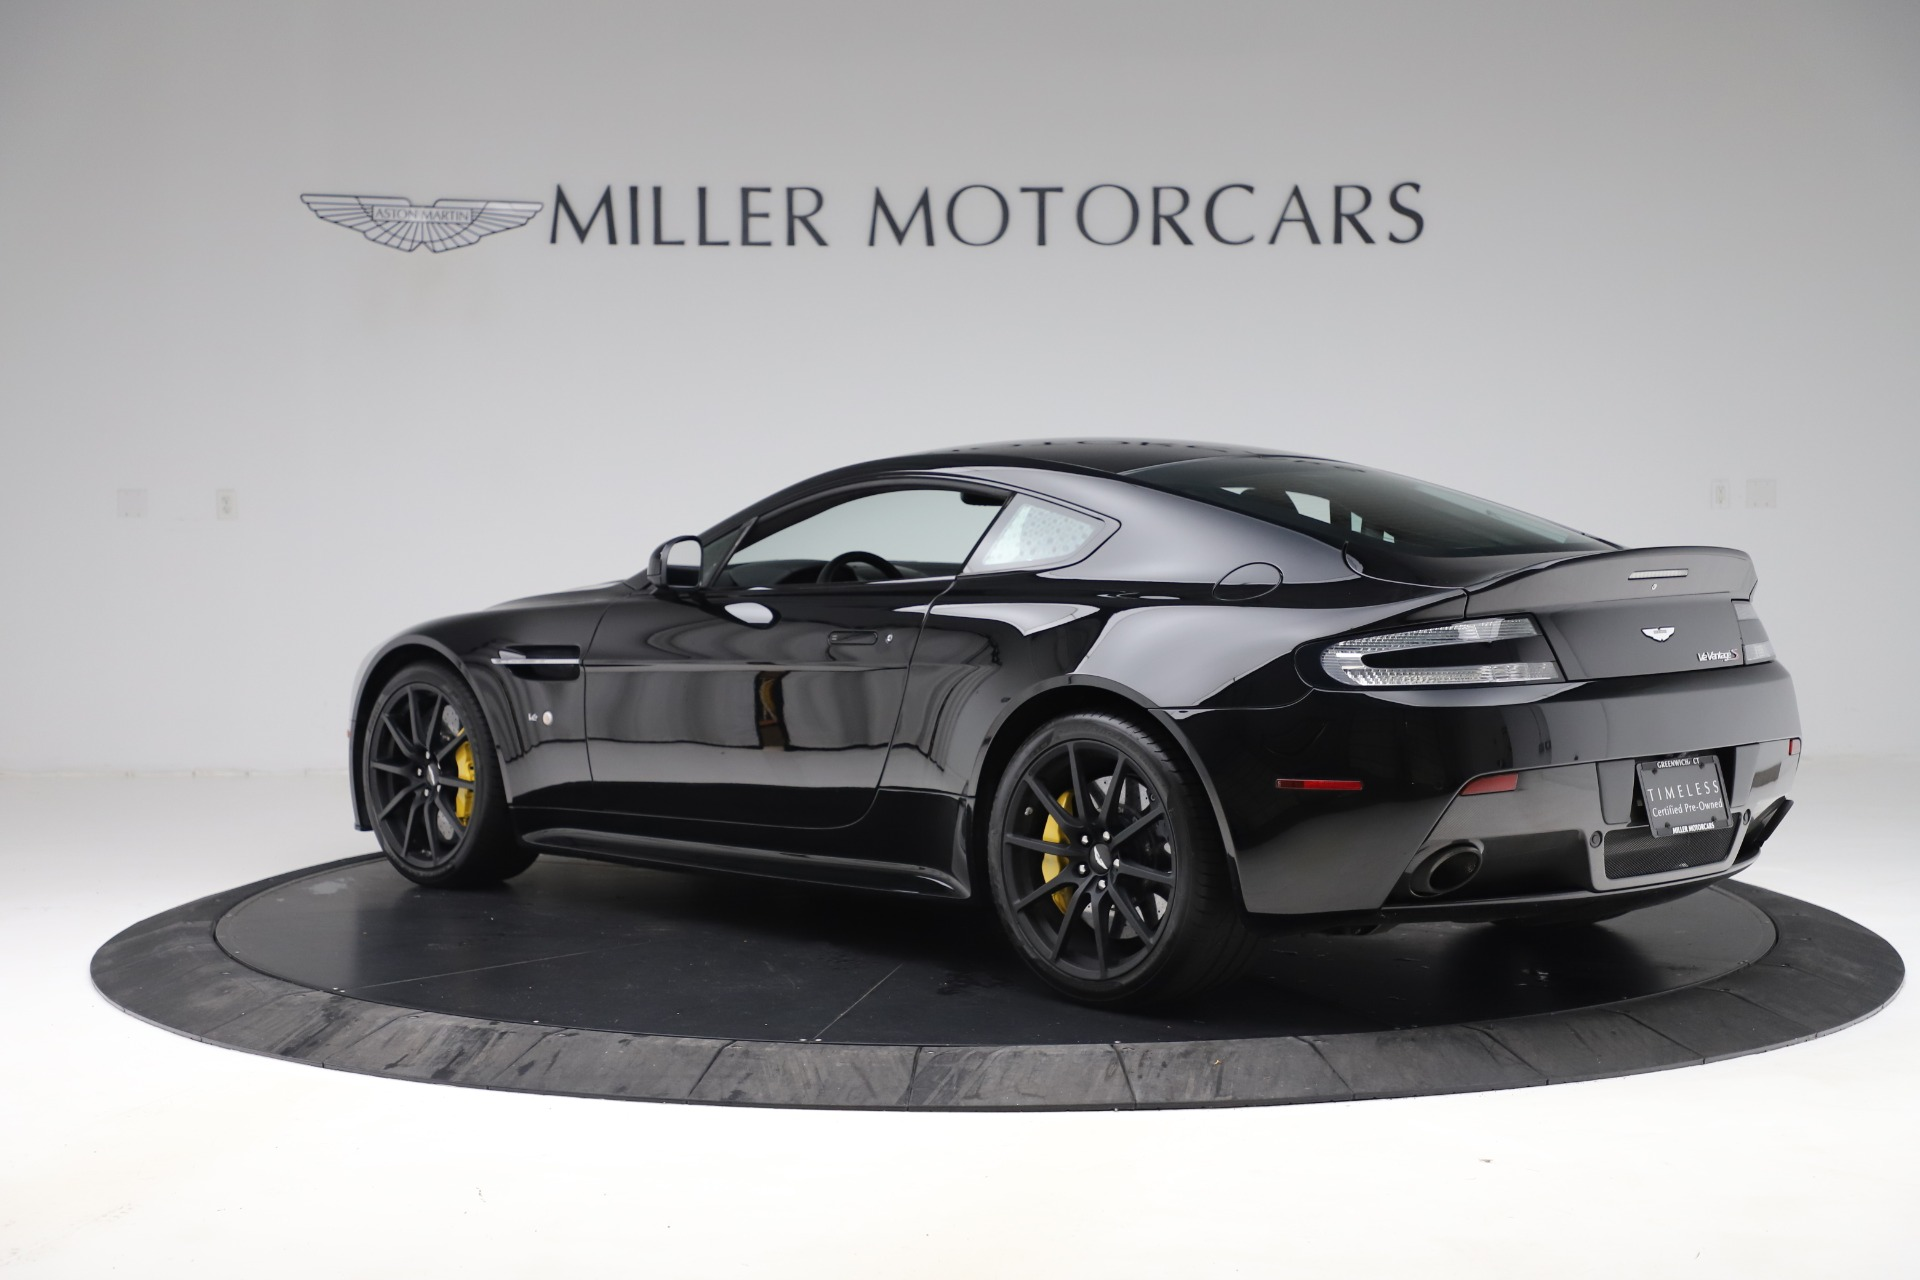 Used 2015 Aston Martin V12 Vantage S Coupe For Sale In Westport, CT 3513_p4